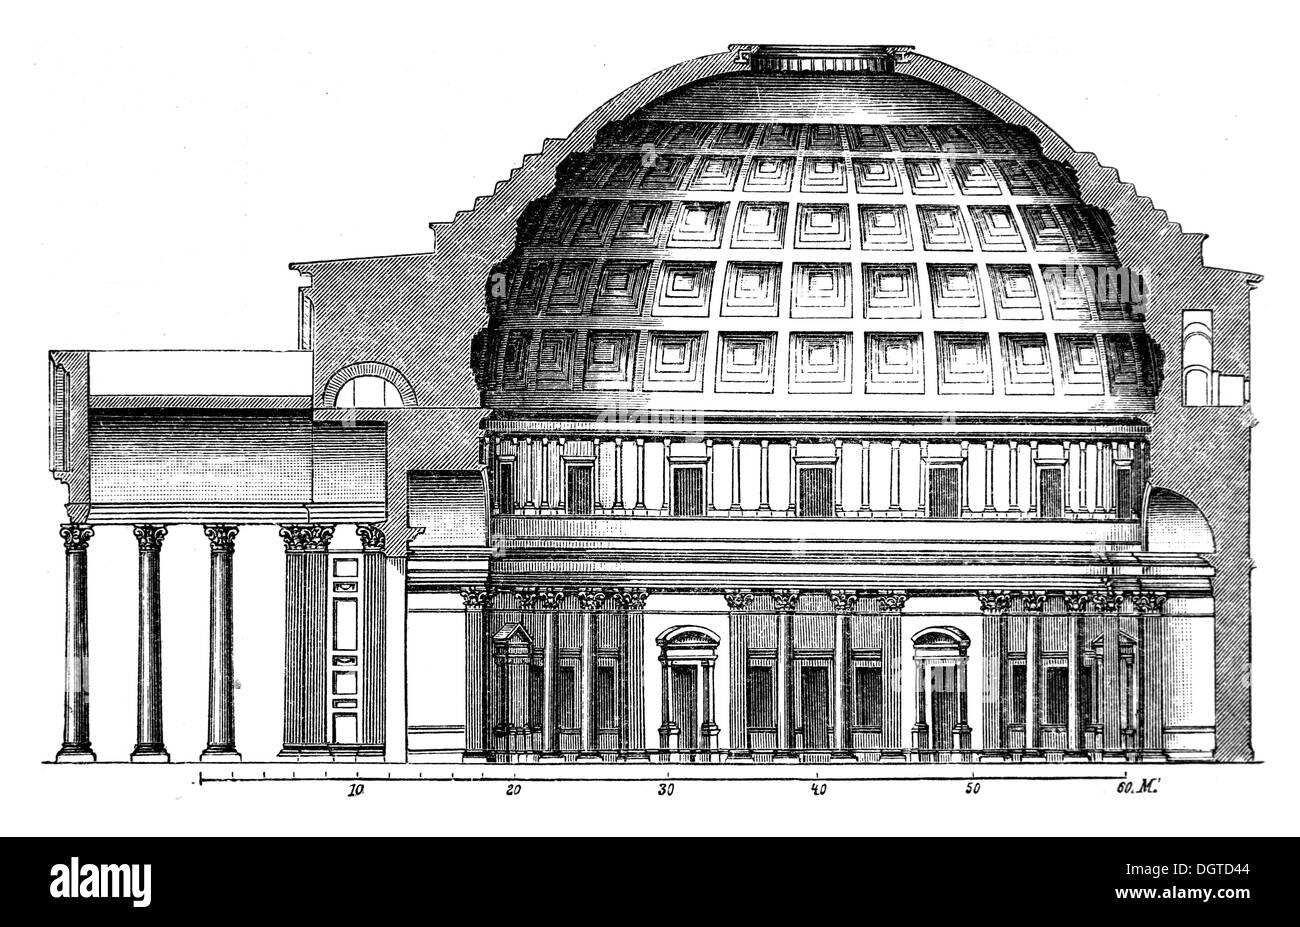 Longitudinal Section Of The Pantheon In Rome Illustration